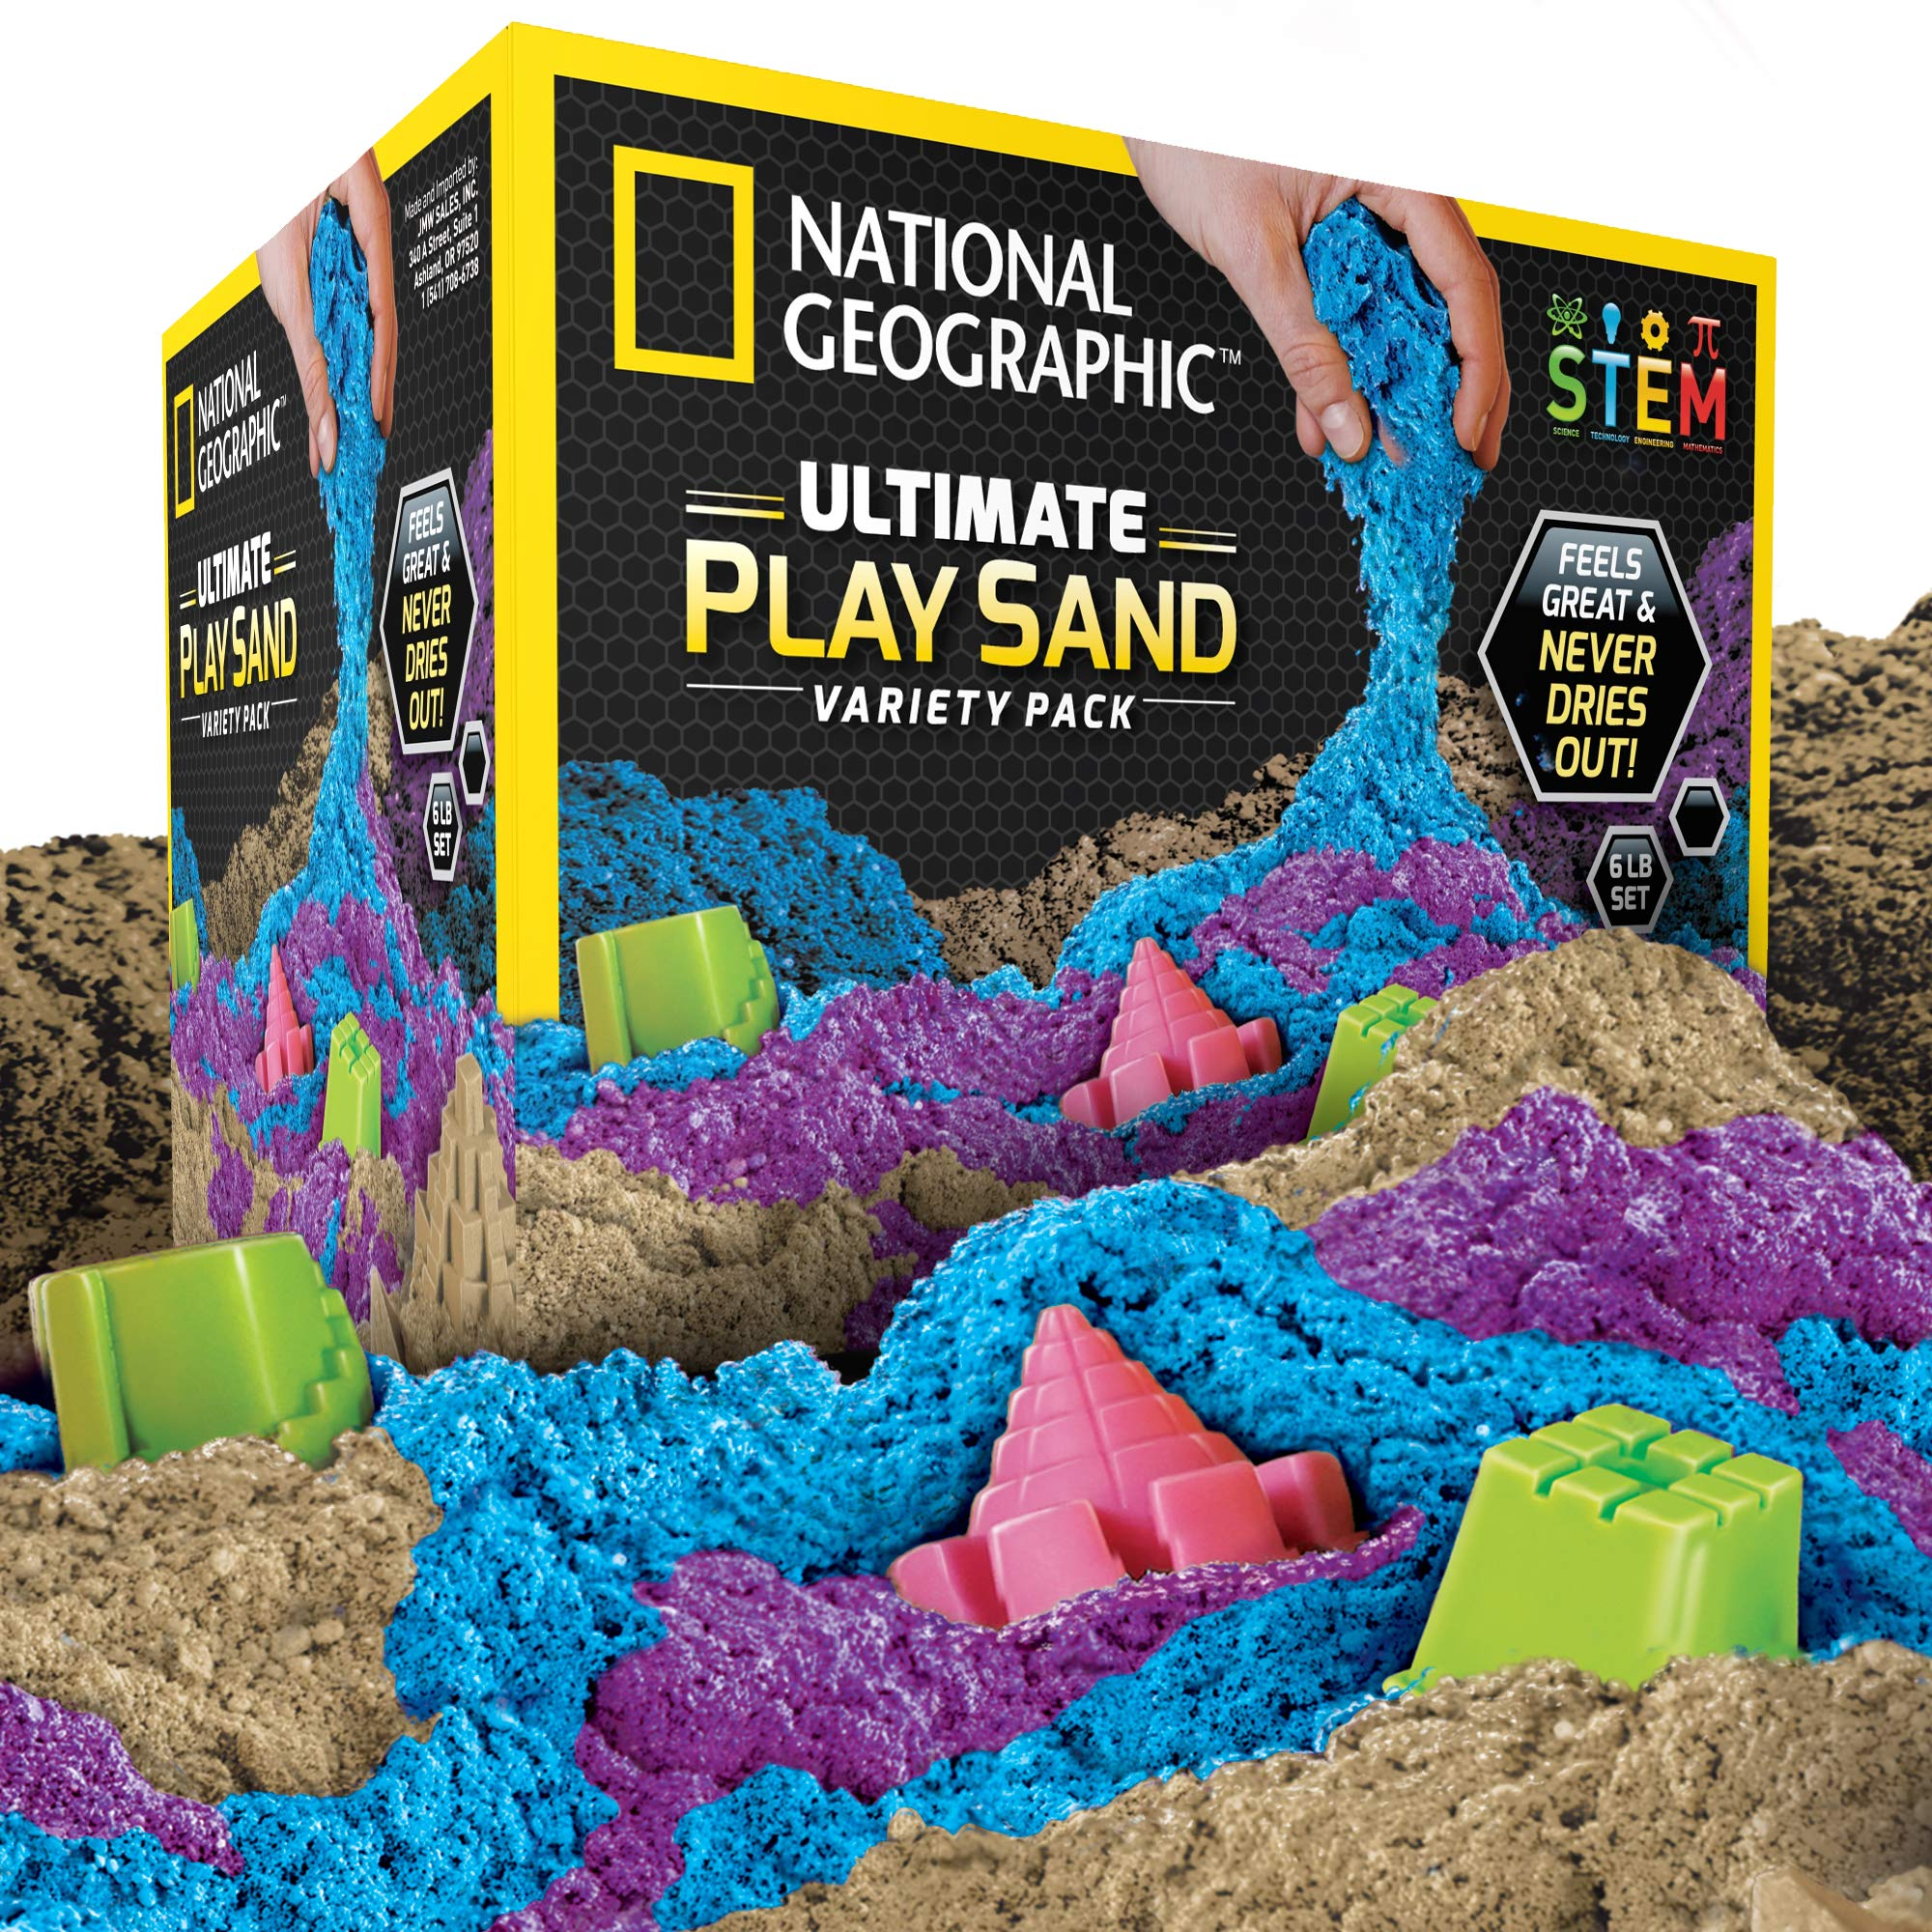 NATIONAL GEOGRAPHIC Play Sand Combo Pack - 2 LBS each of Blue, Purple and Natural Sand with Castle Molds - A Kinetic Sensory Activity by NATIONAL GEOGRAPHIC